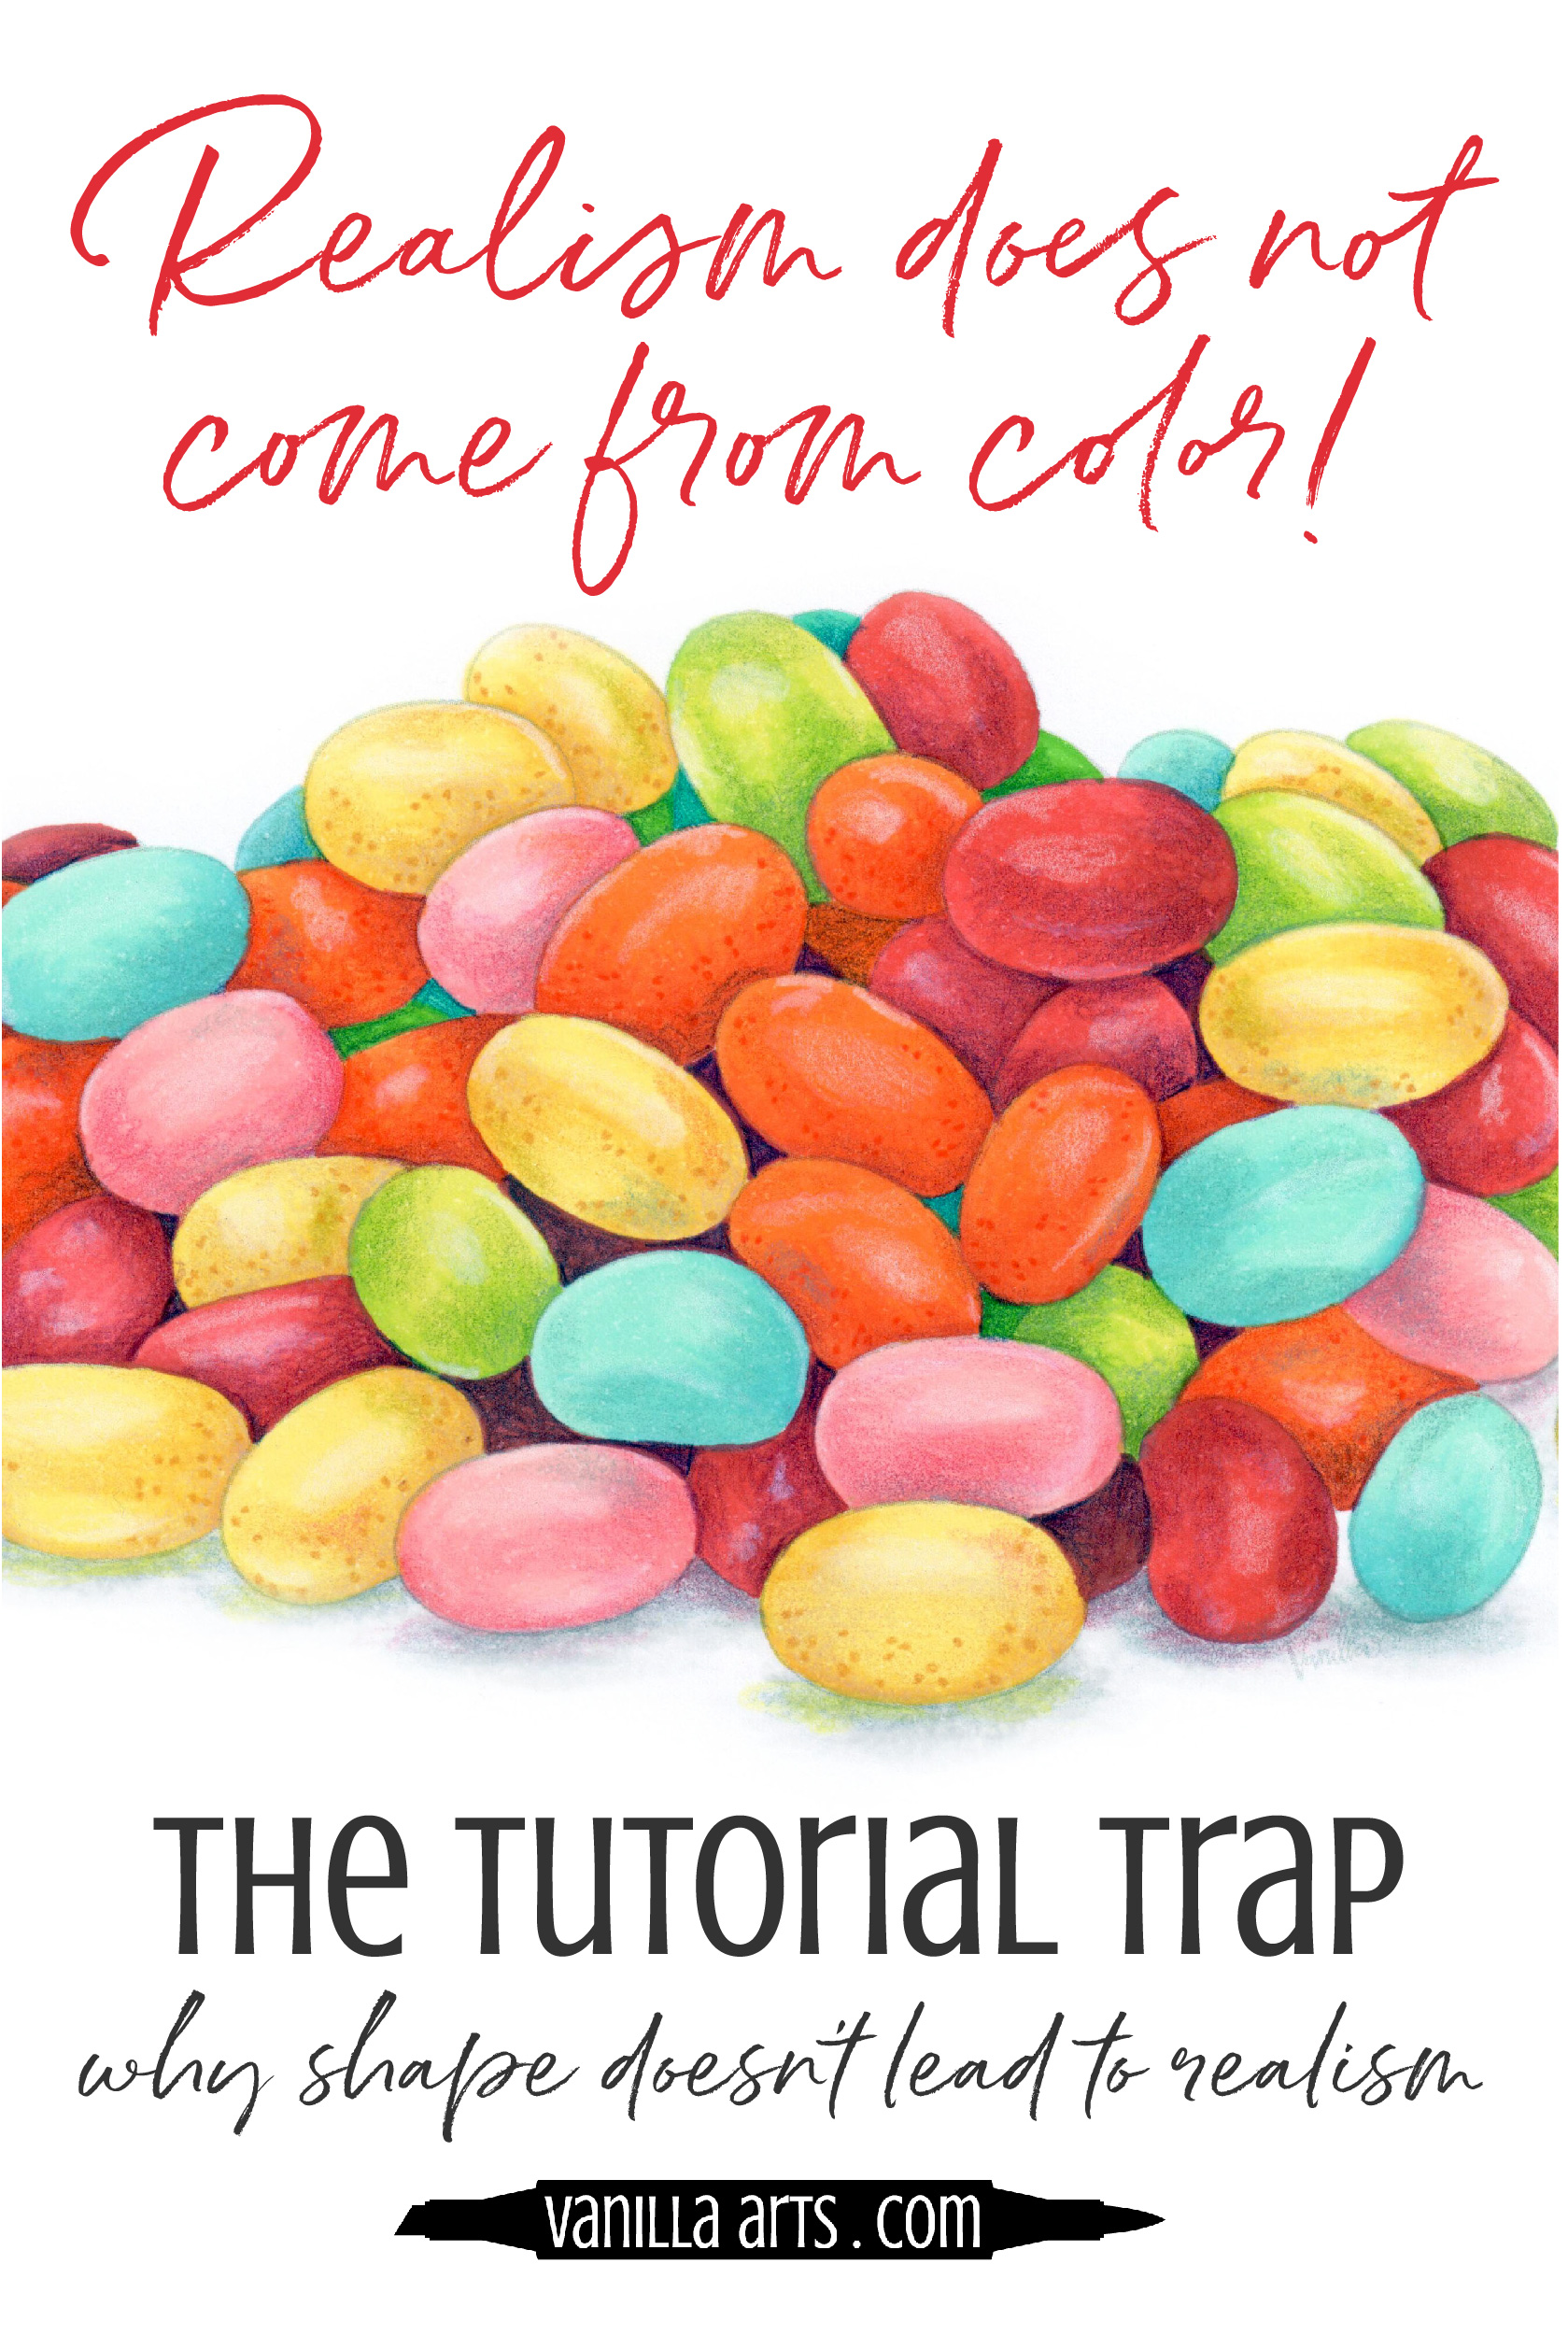 Do your Copic Marker and colored pencil projects look flat? Do you follow lots of coloring tutorials? There's a connection! Learn how to add back true depth & dimension. | VanillaArts.com | #copicmarker #coloredpencil #realisticcoloring